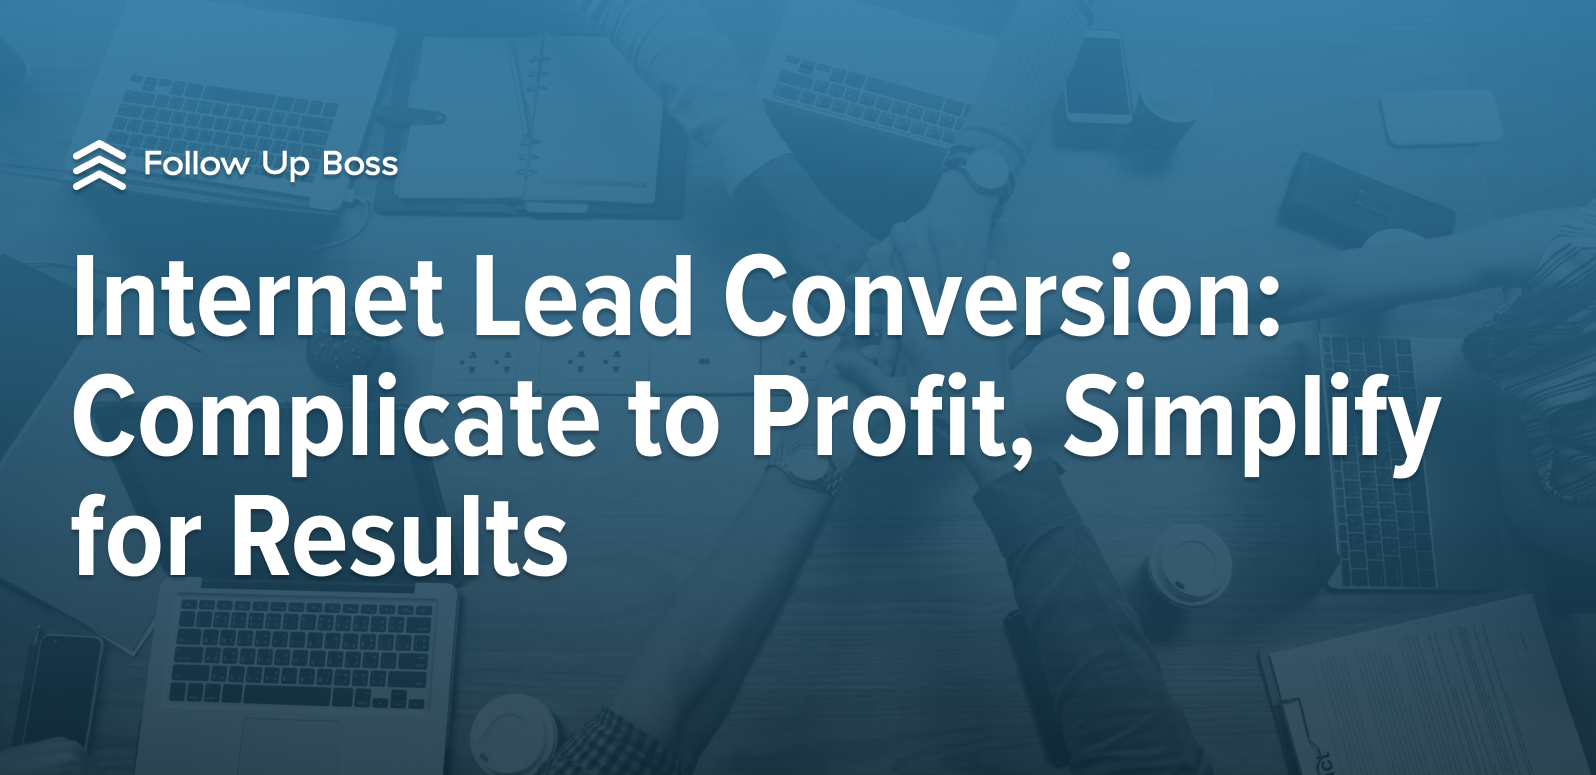 Internet Lead Conversion: Complicate to Profit, Simplify for Results